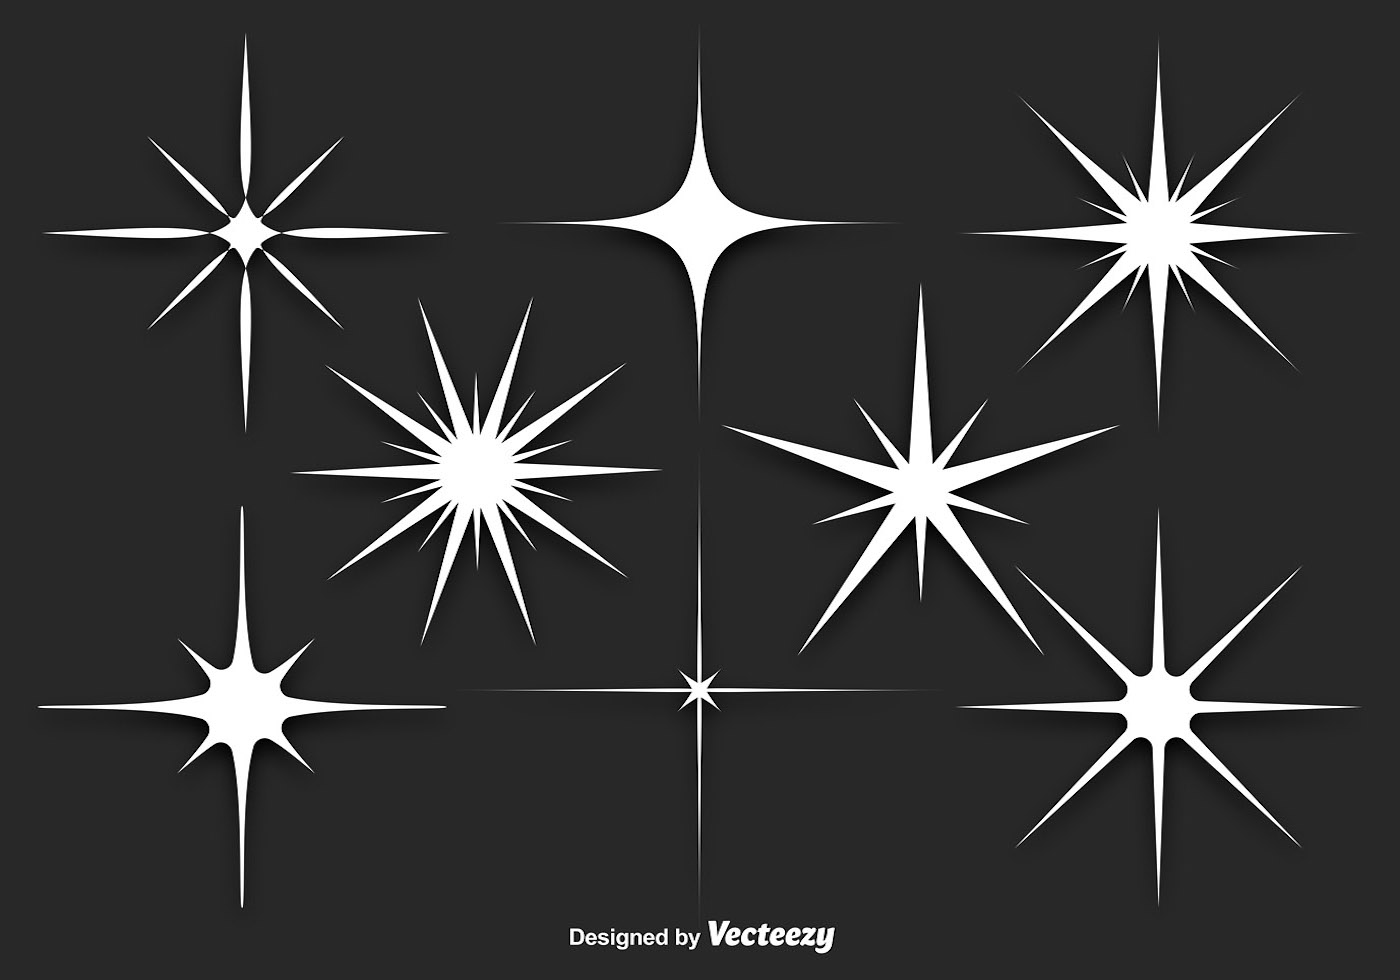 Free Bling Effect Cliparts, Download Free Clip Art, Free Clip Art on.